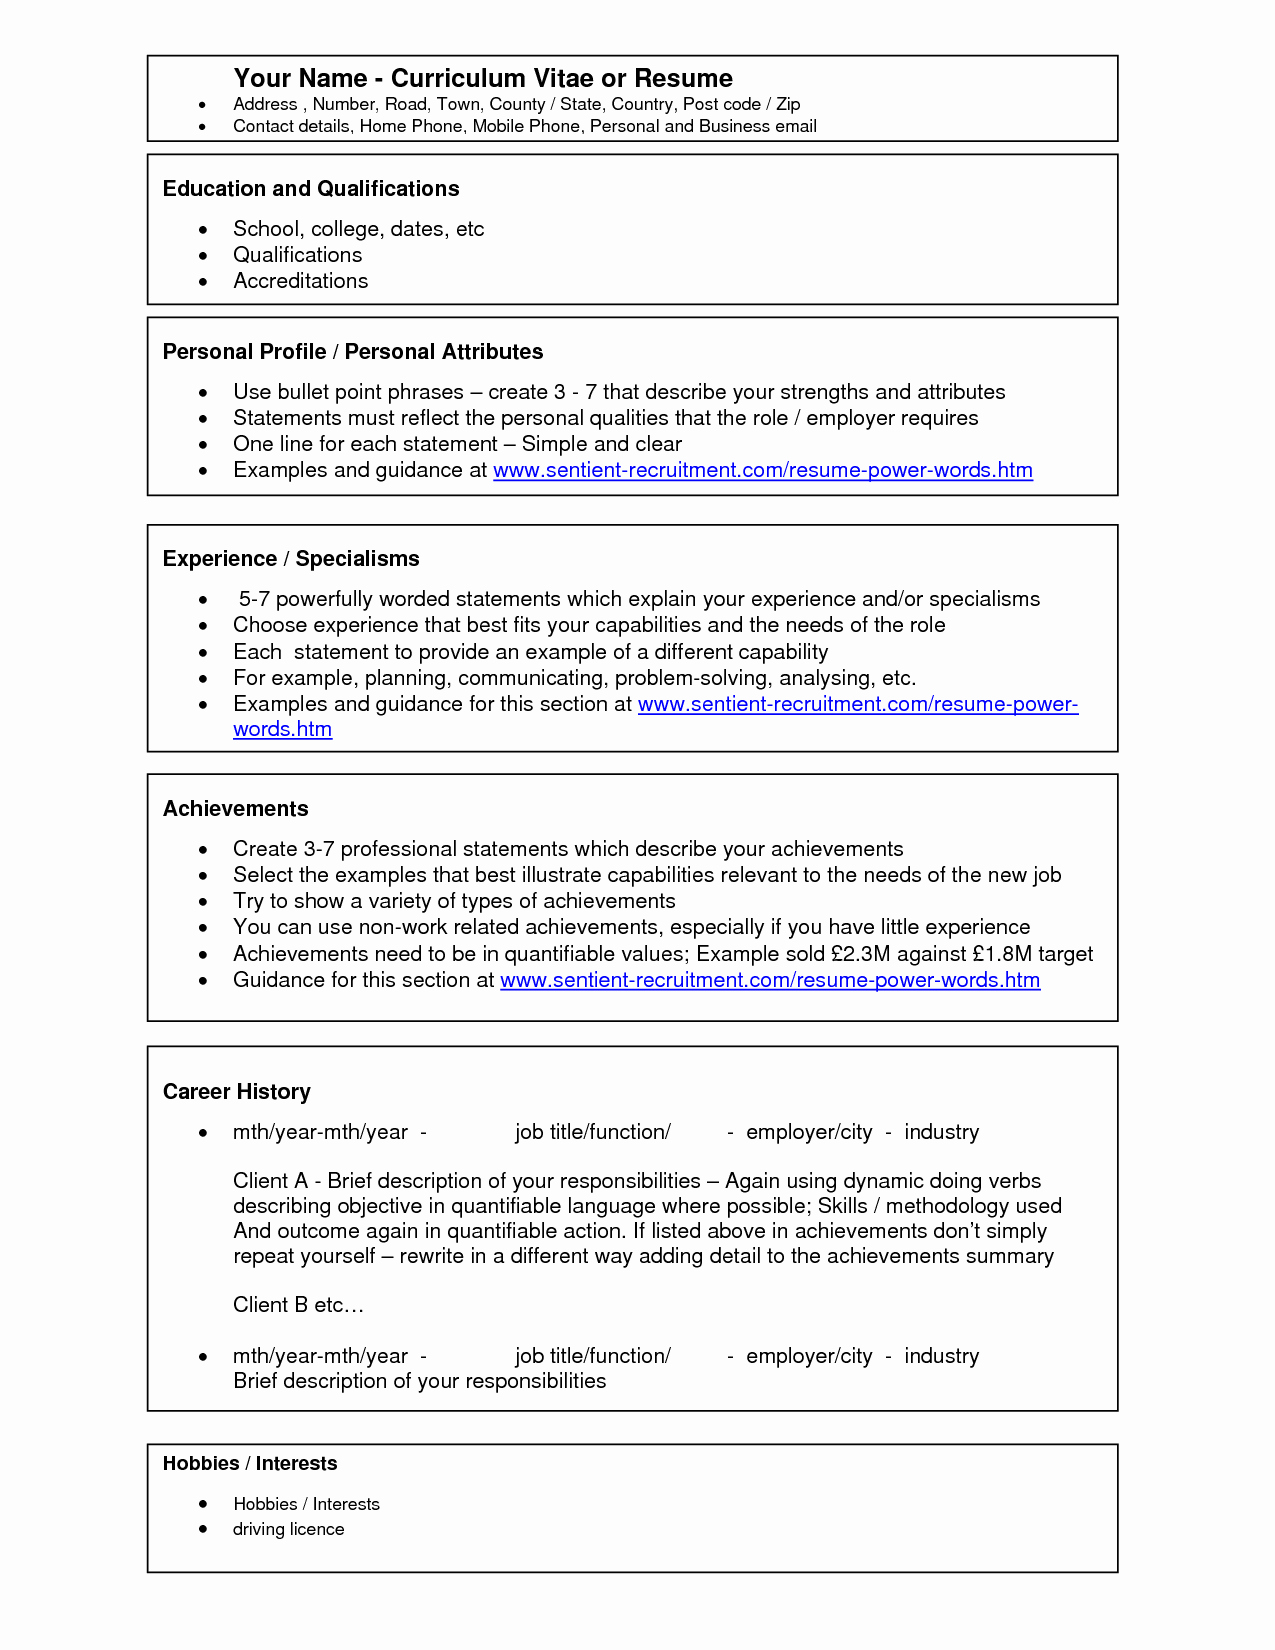 Pic Scope Of Work Template